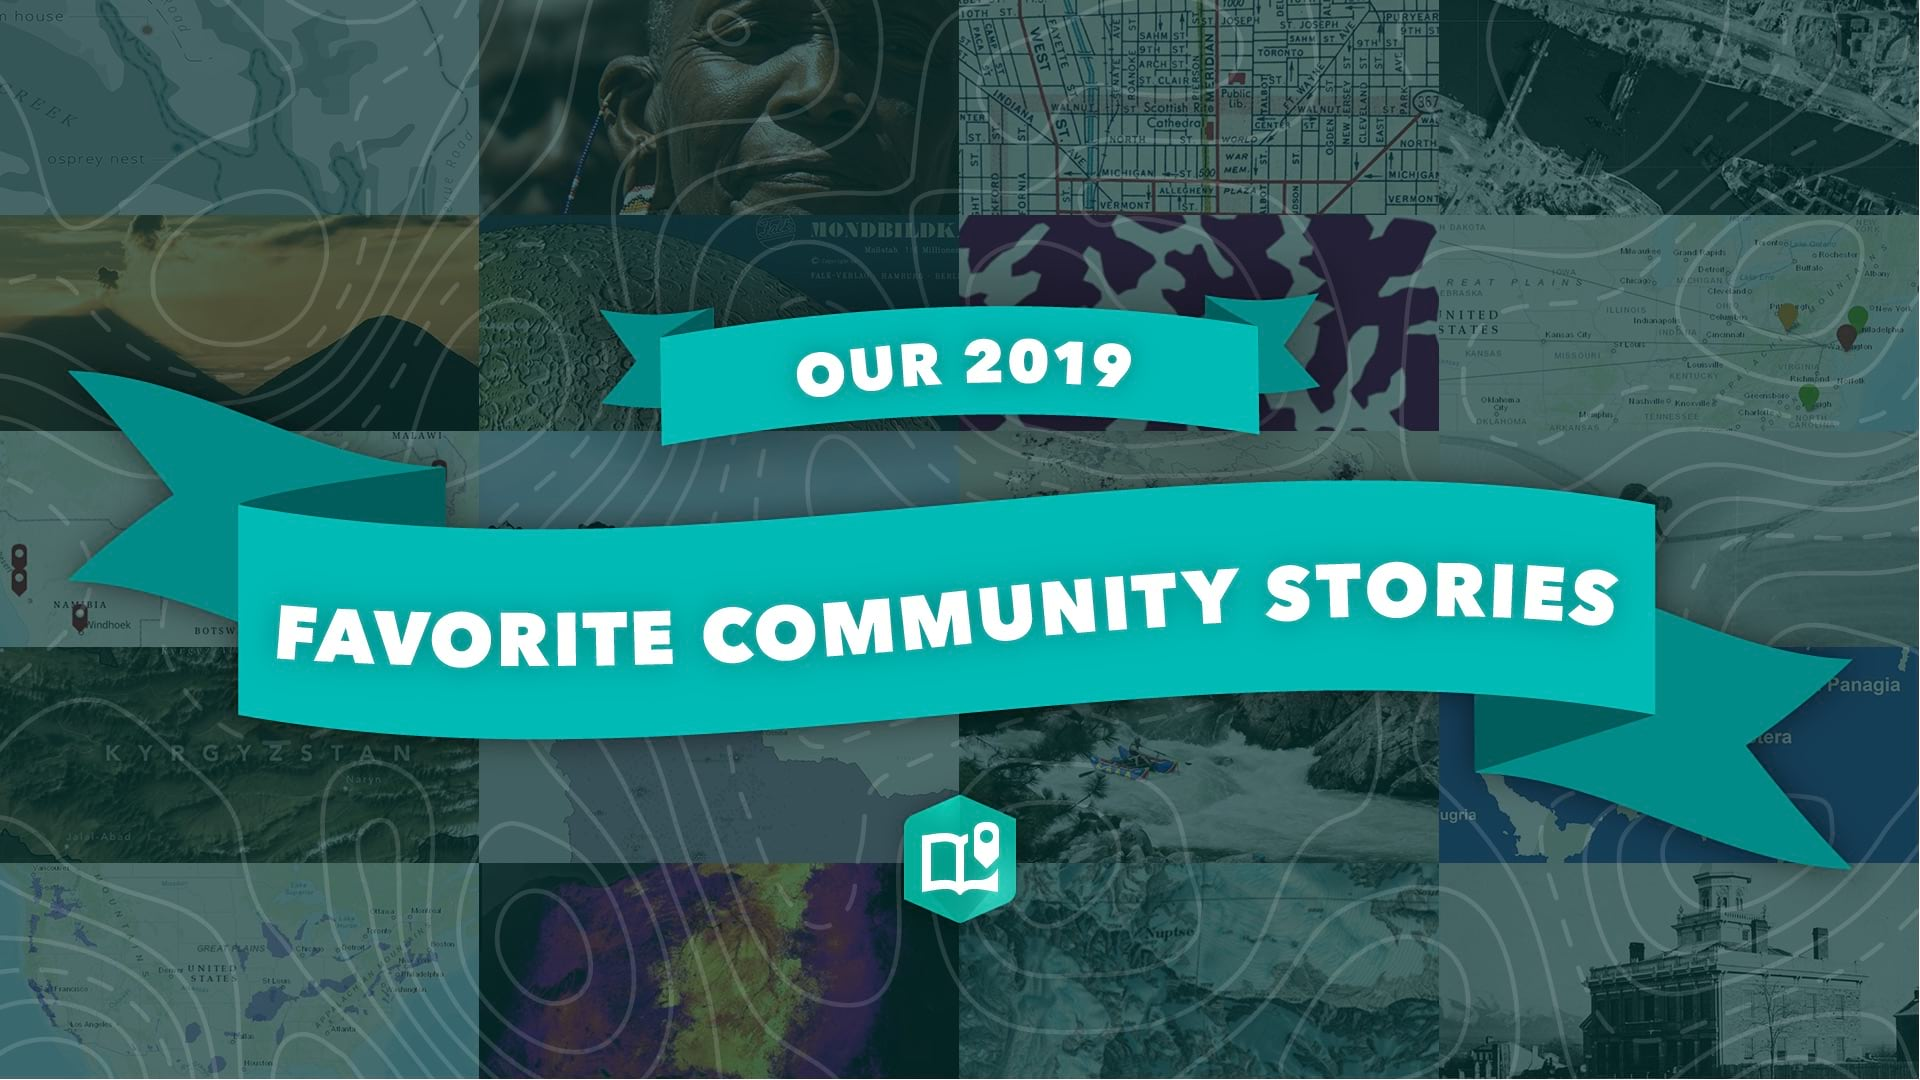 A graphical image to promote the 2019 community stories collection